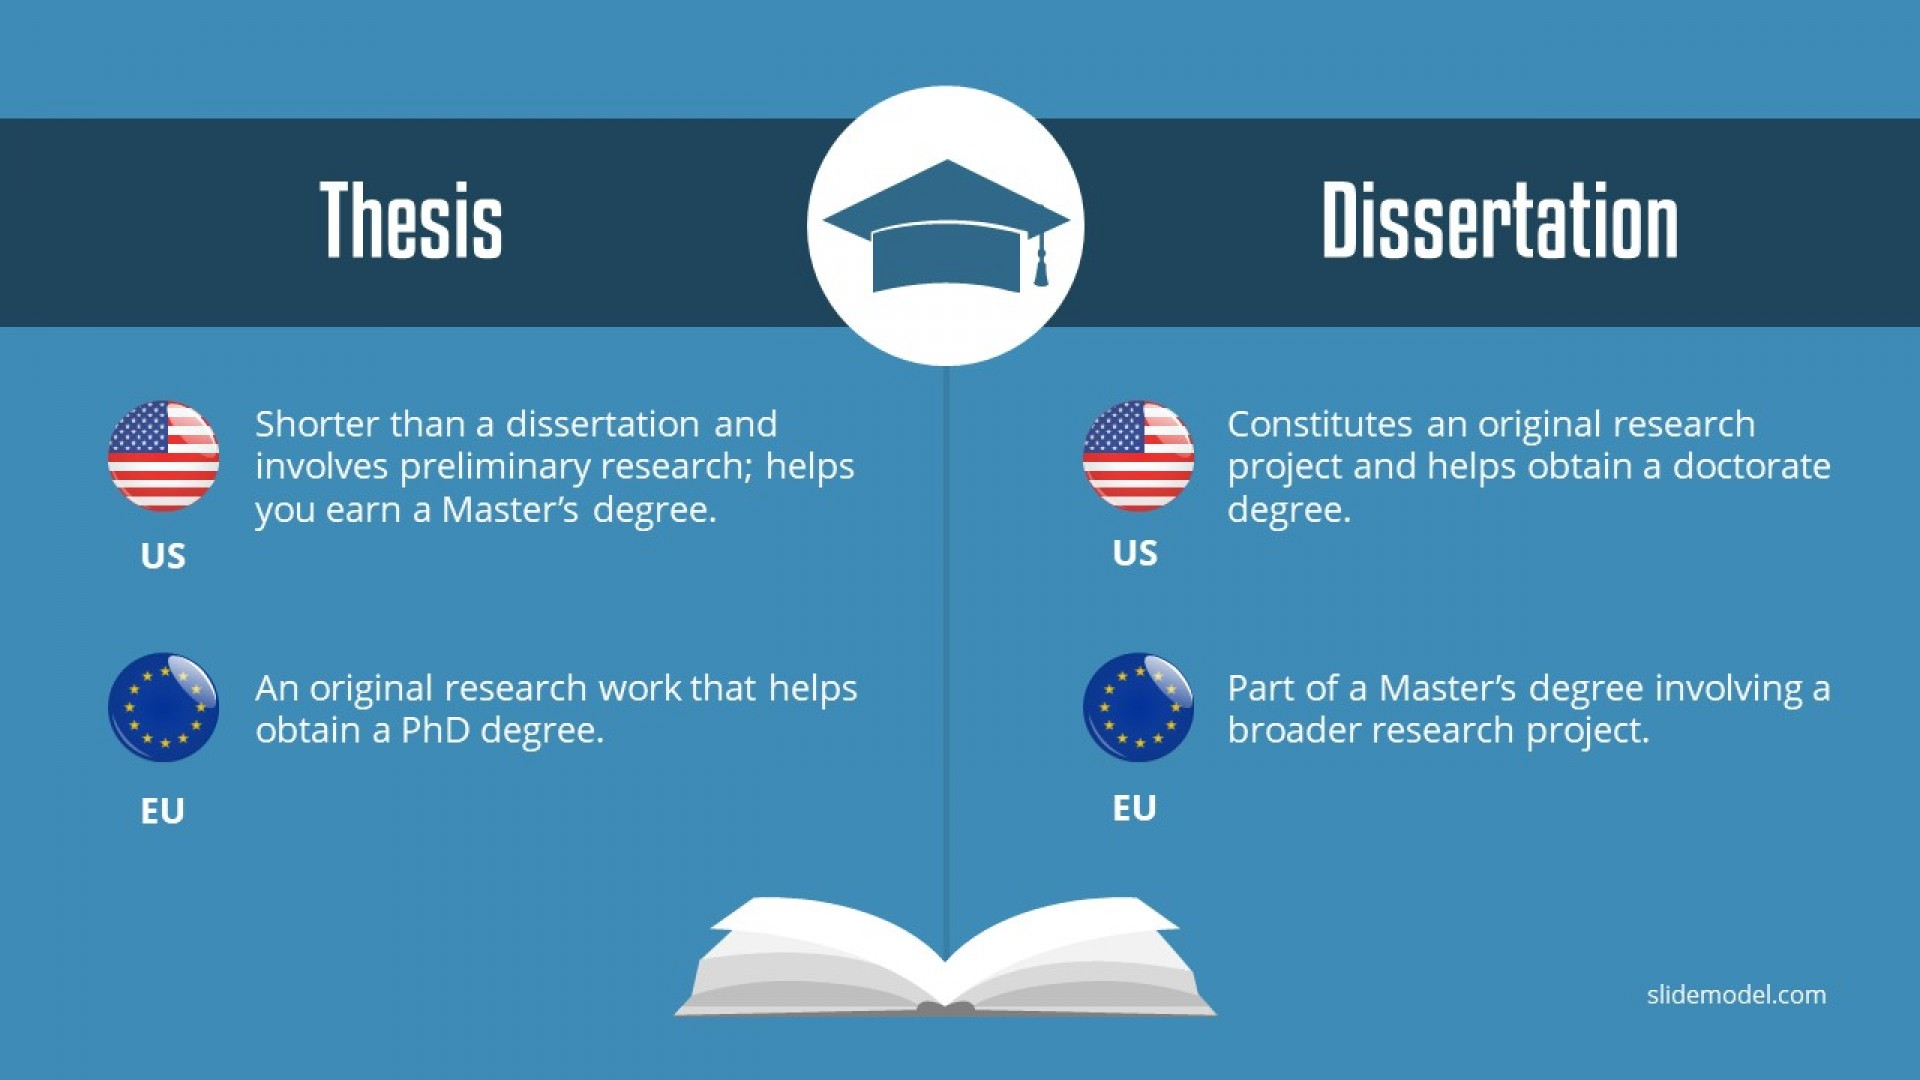 012 Research Paper Parts Of Ppt Comparison Slide Thesis Vs Staggering A Qualitative Chapter 1 1920